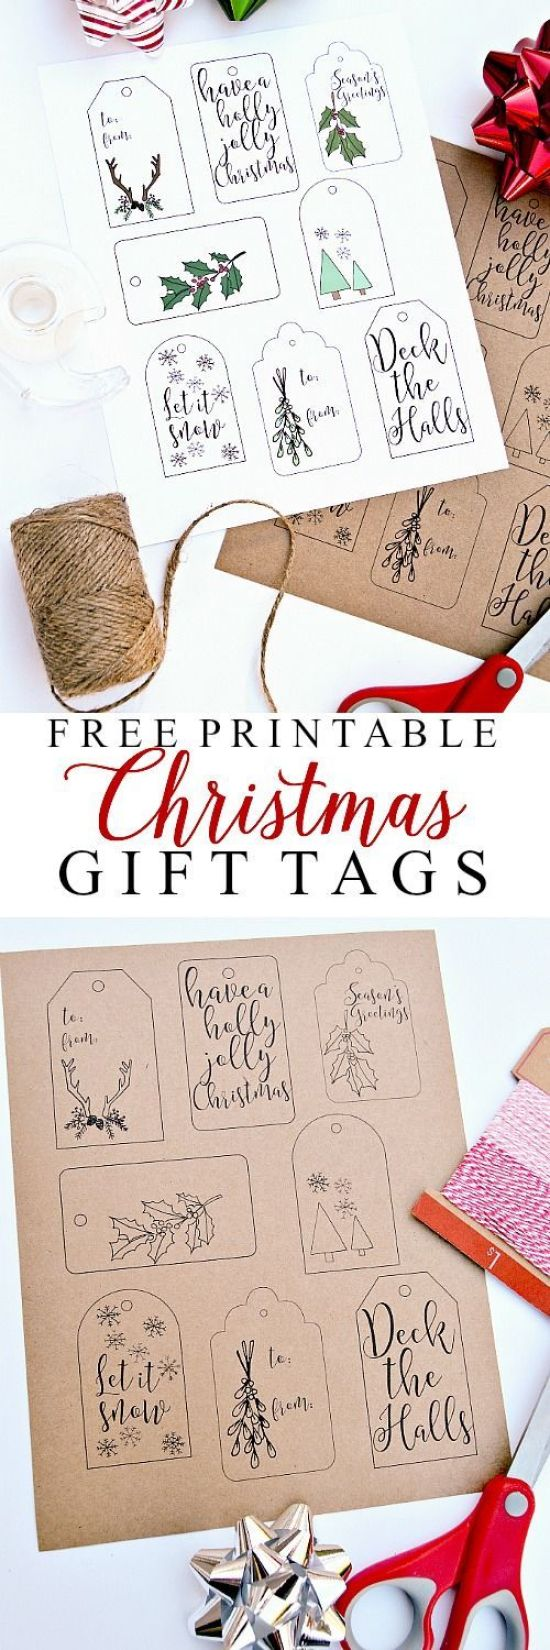 Free Printable Christmas Gift Tags | Ella Claire Inspired